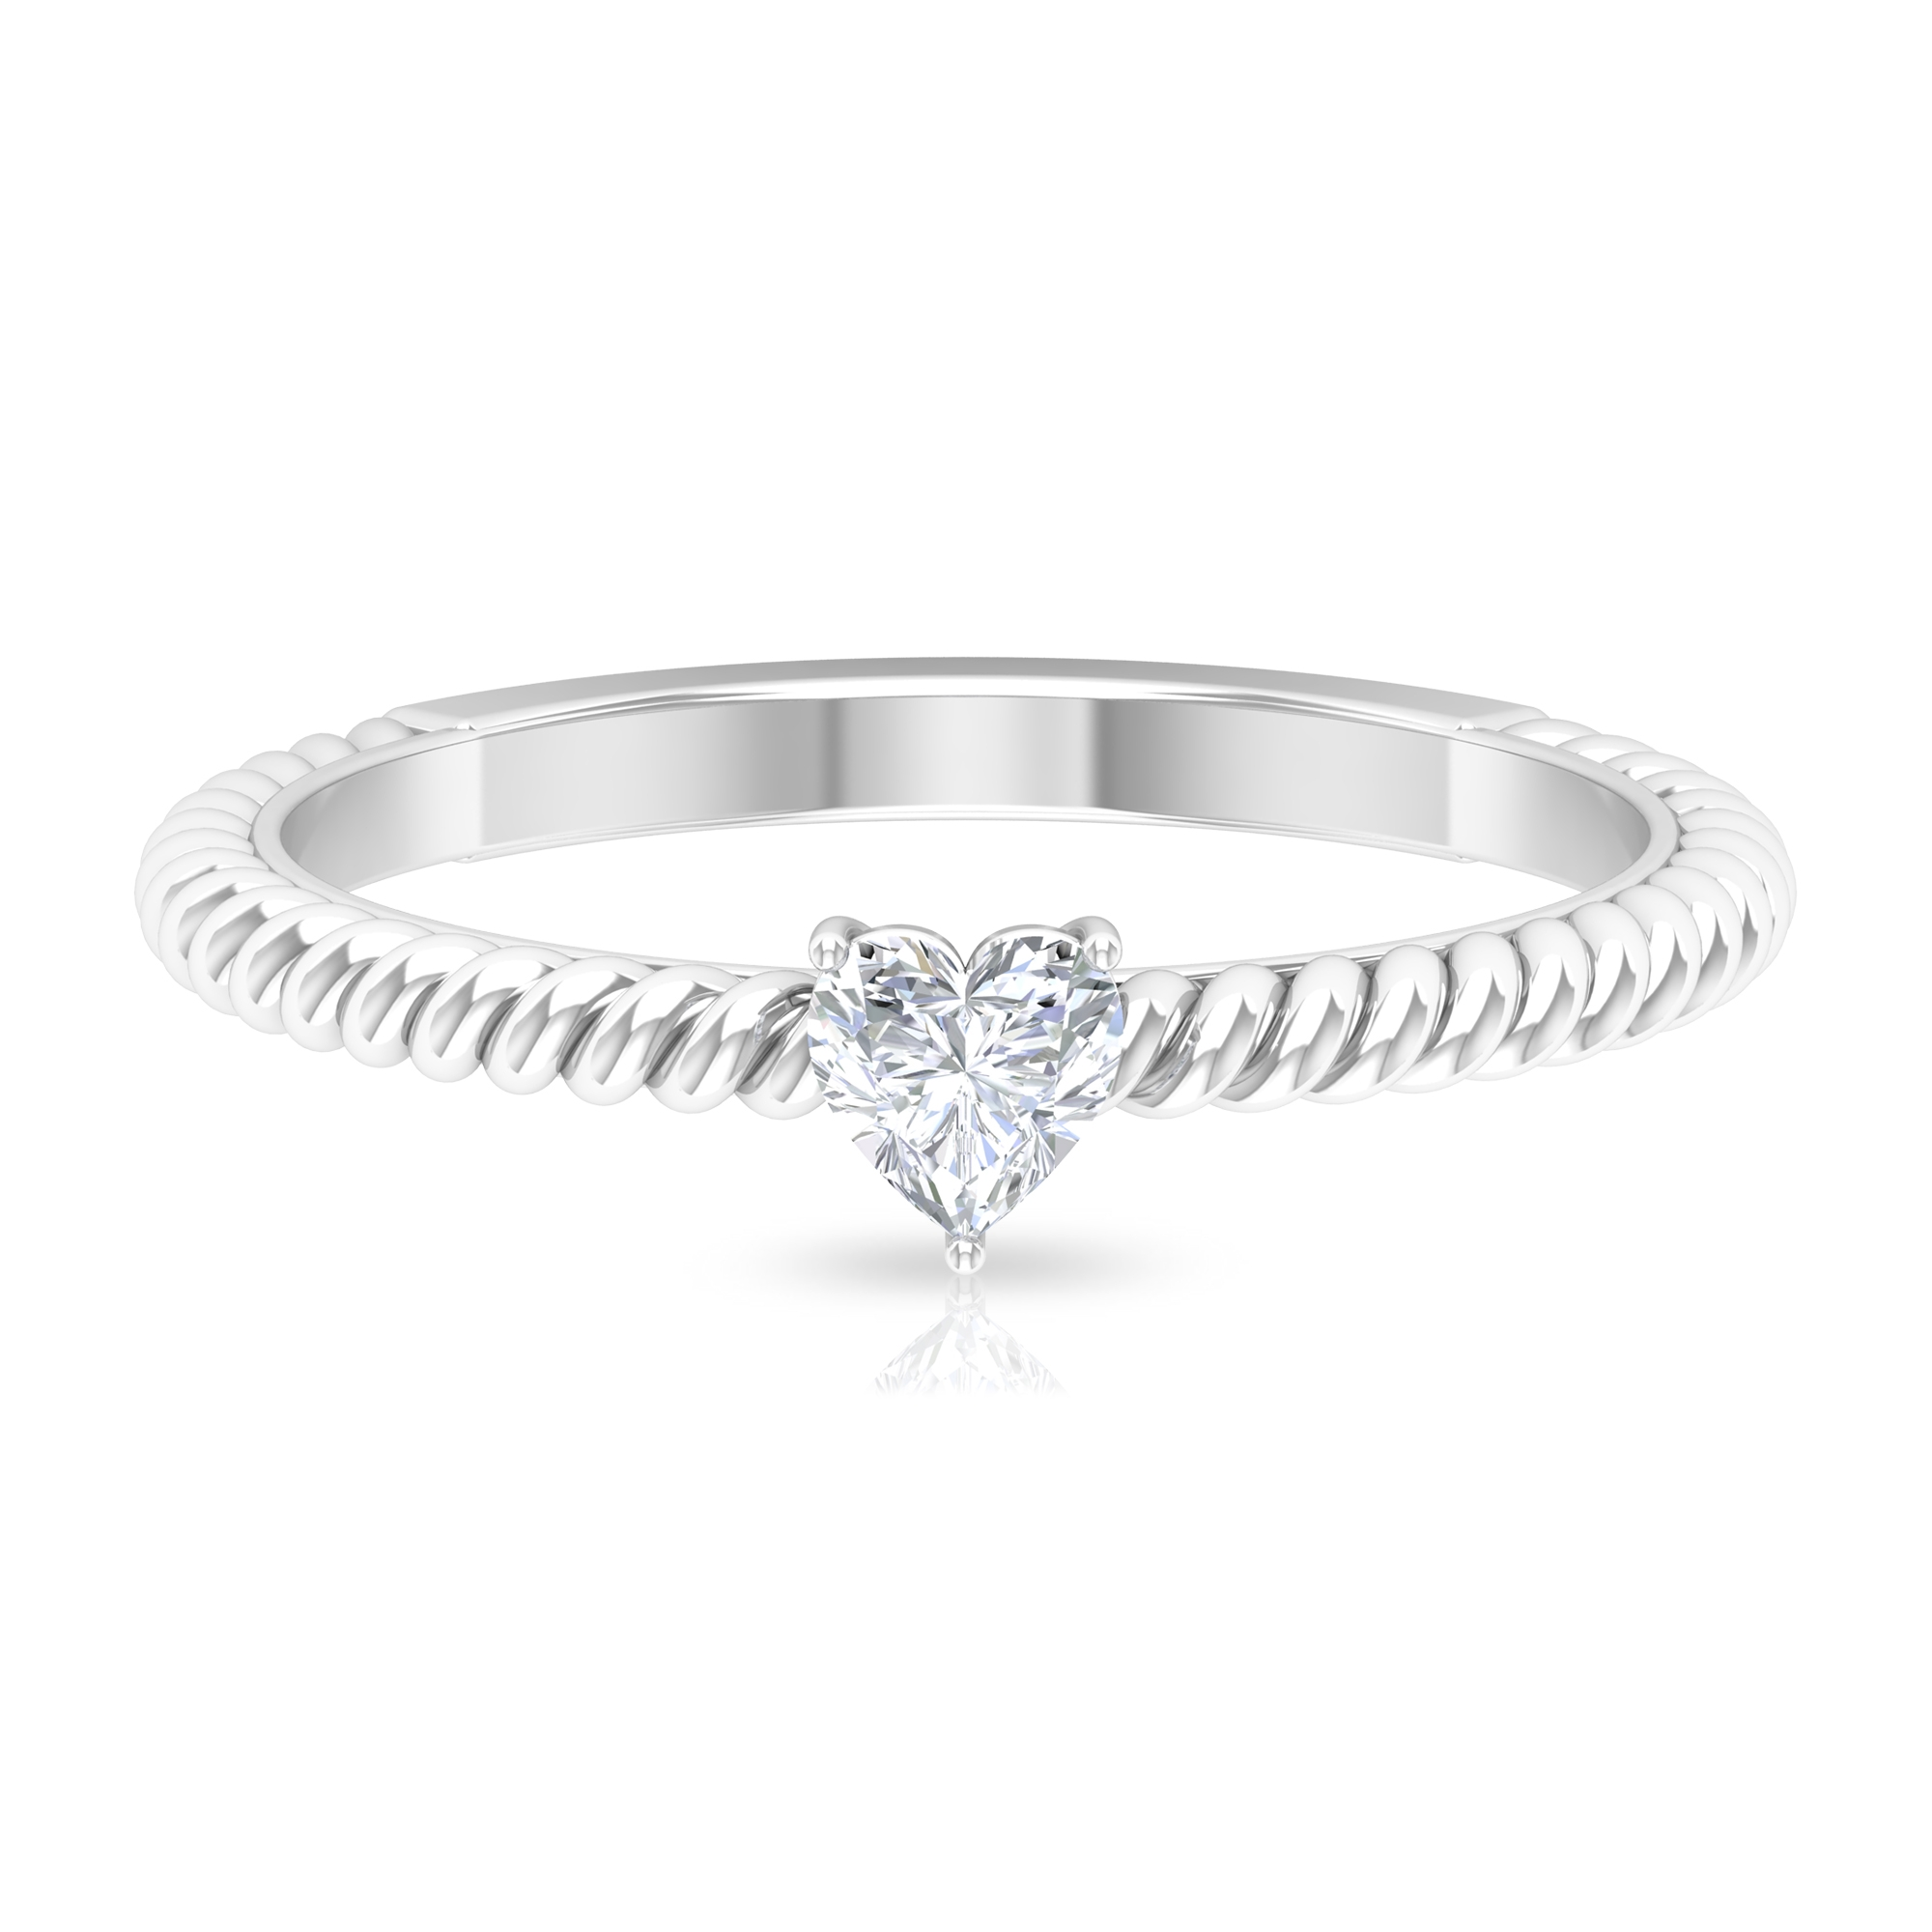 Three Prong Basket Set 4 MM Heart Diamond Solitaire Ring in Twisted Rope Style